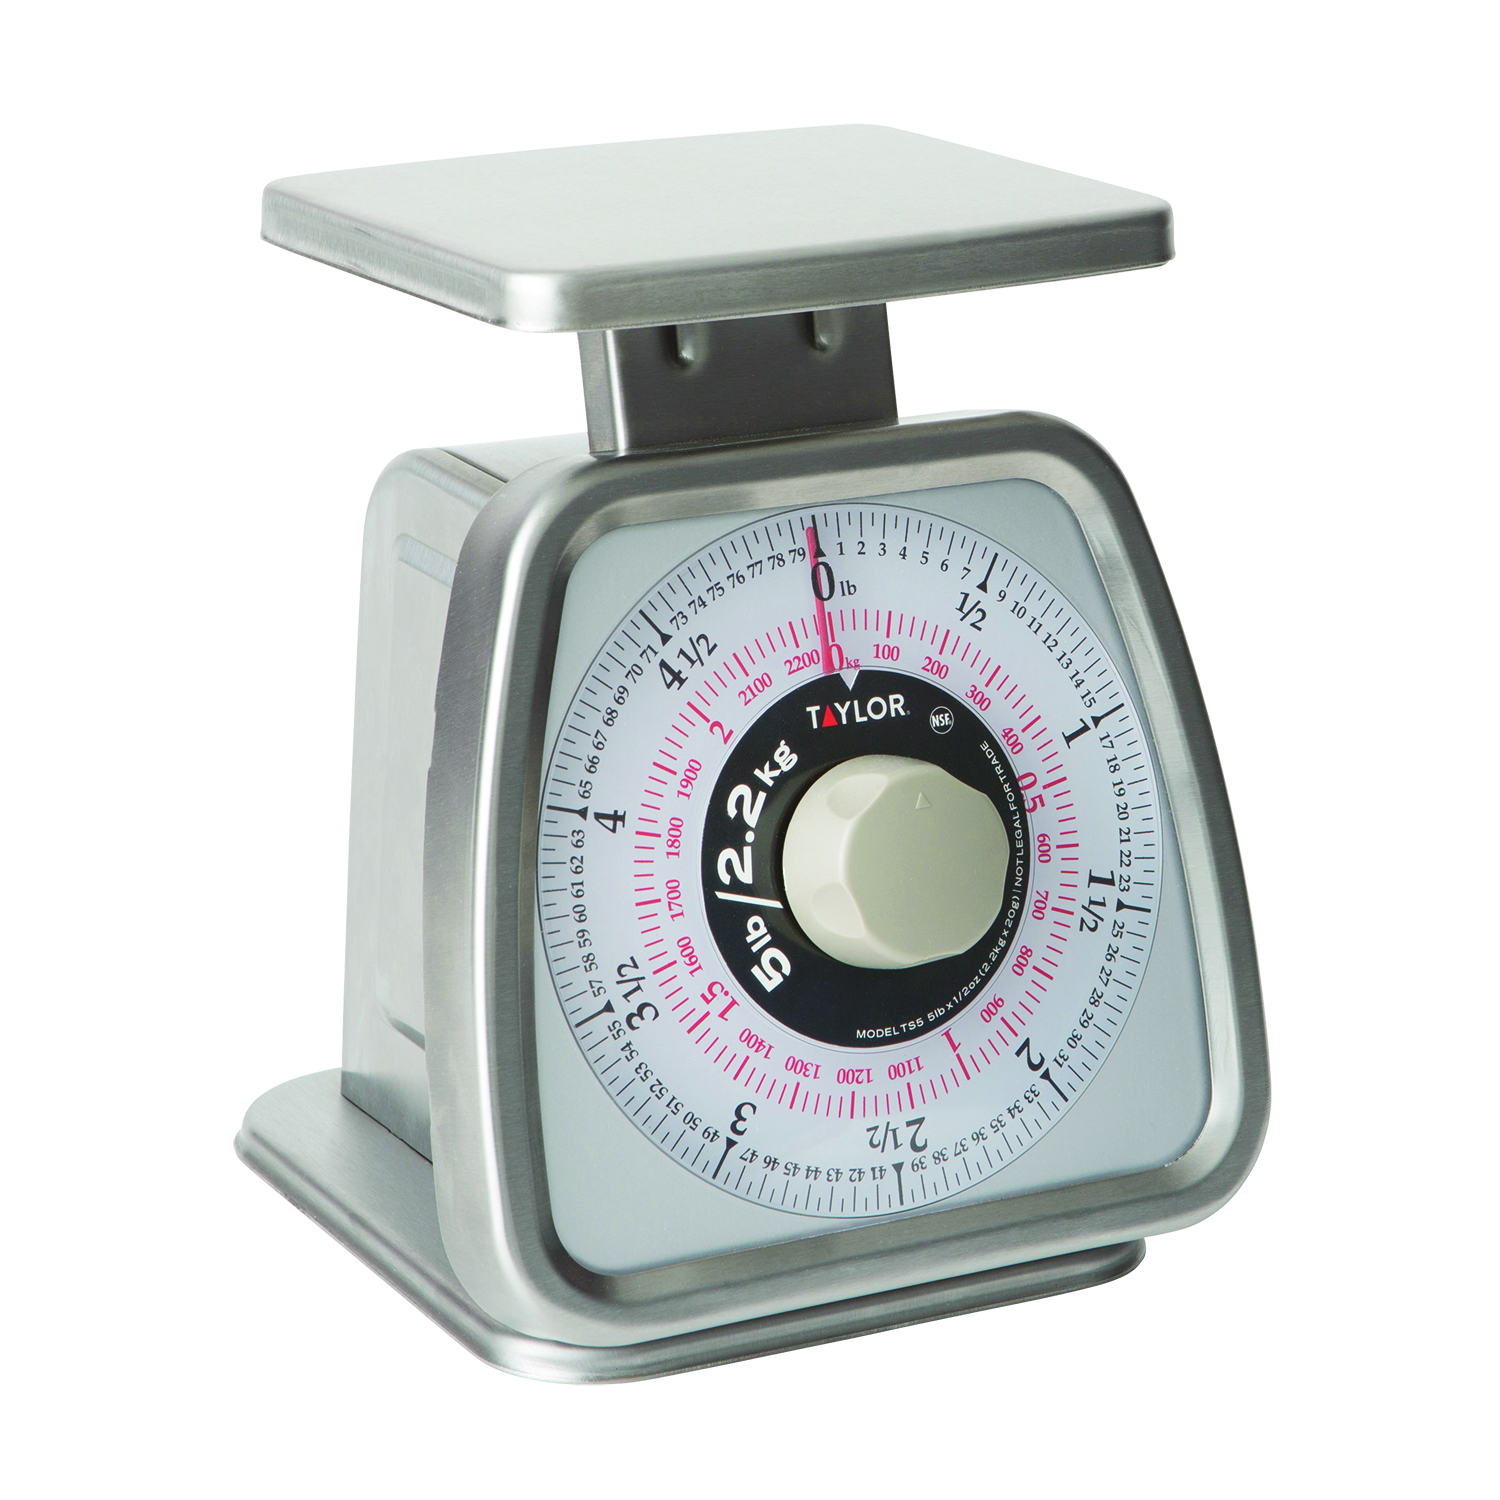 Taylor Precision TS5 scale, portion, dial